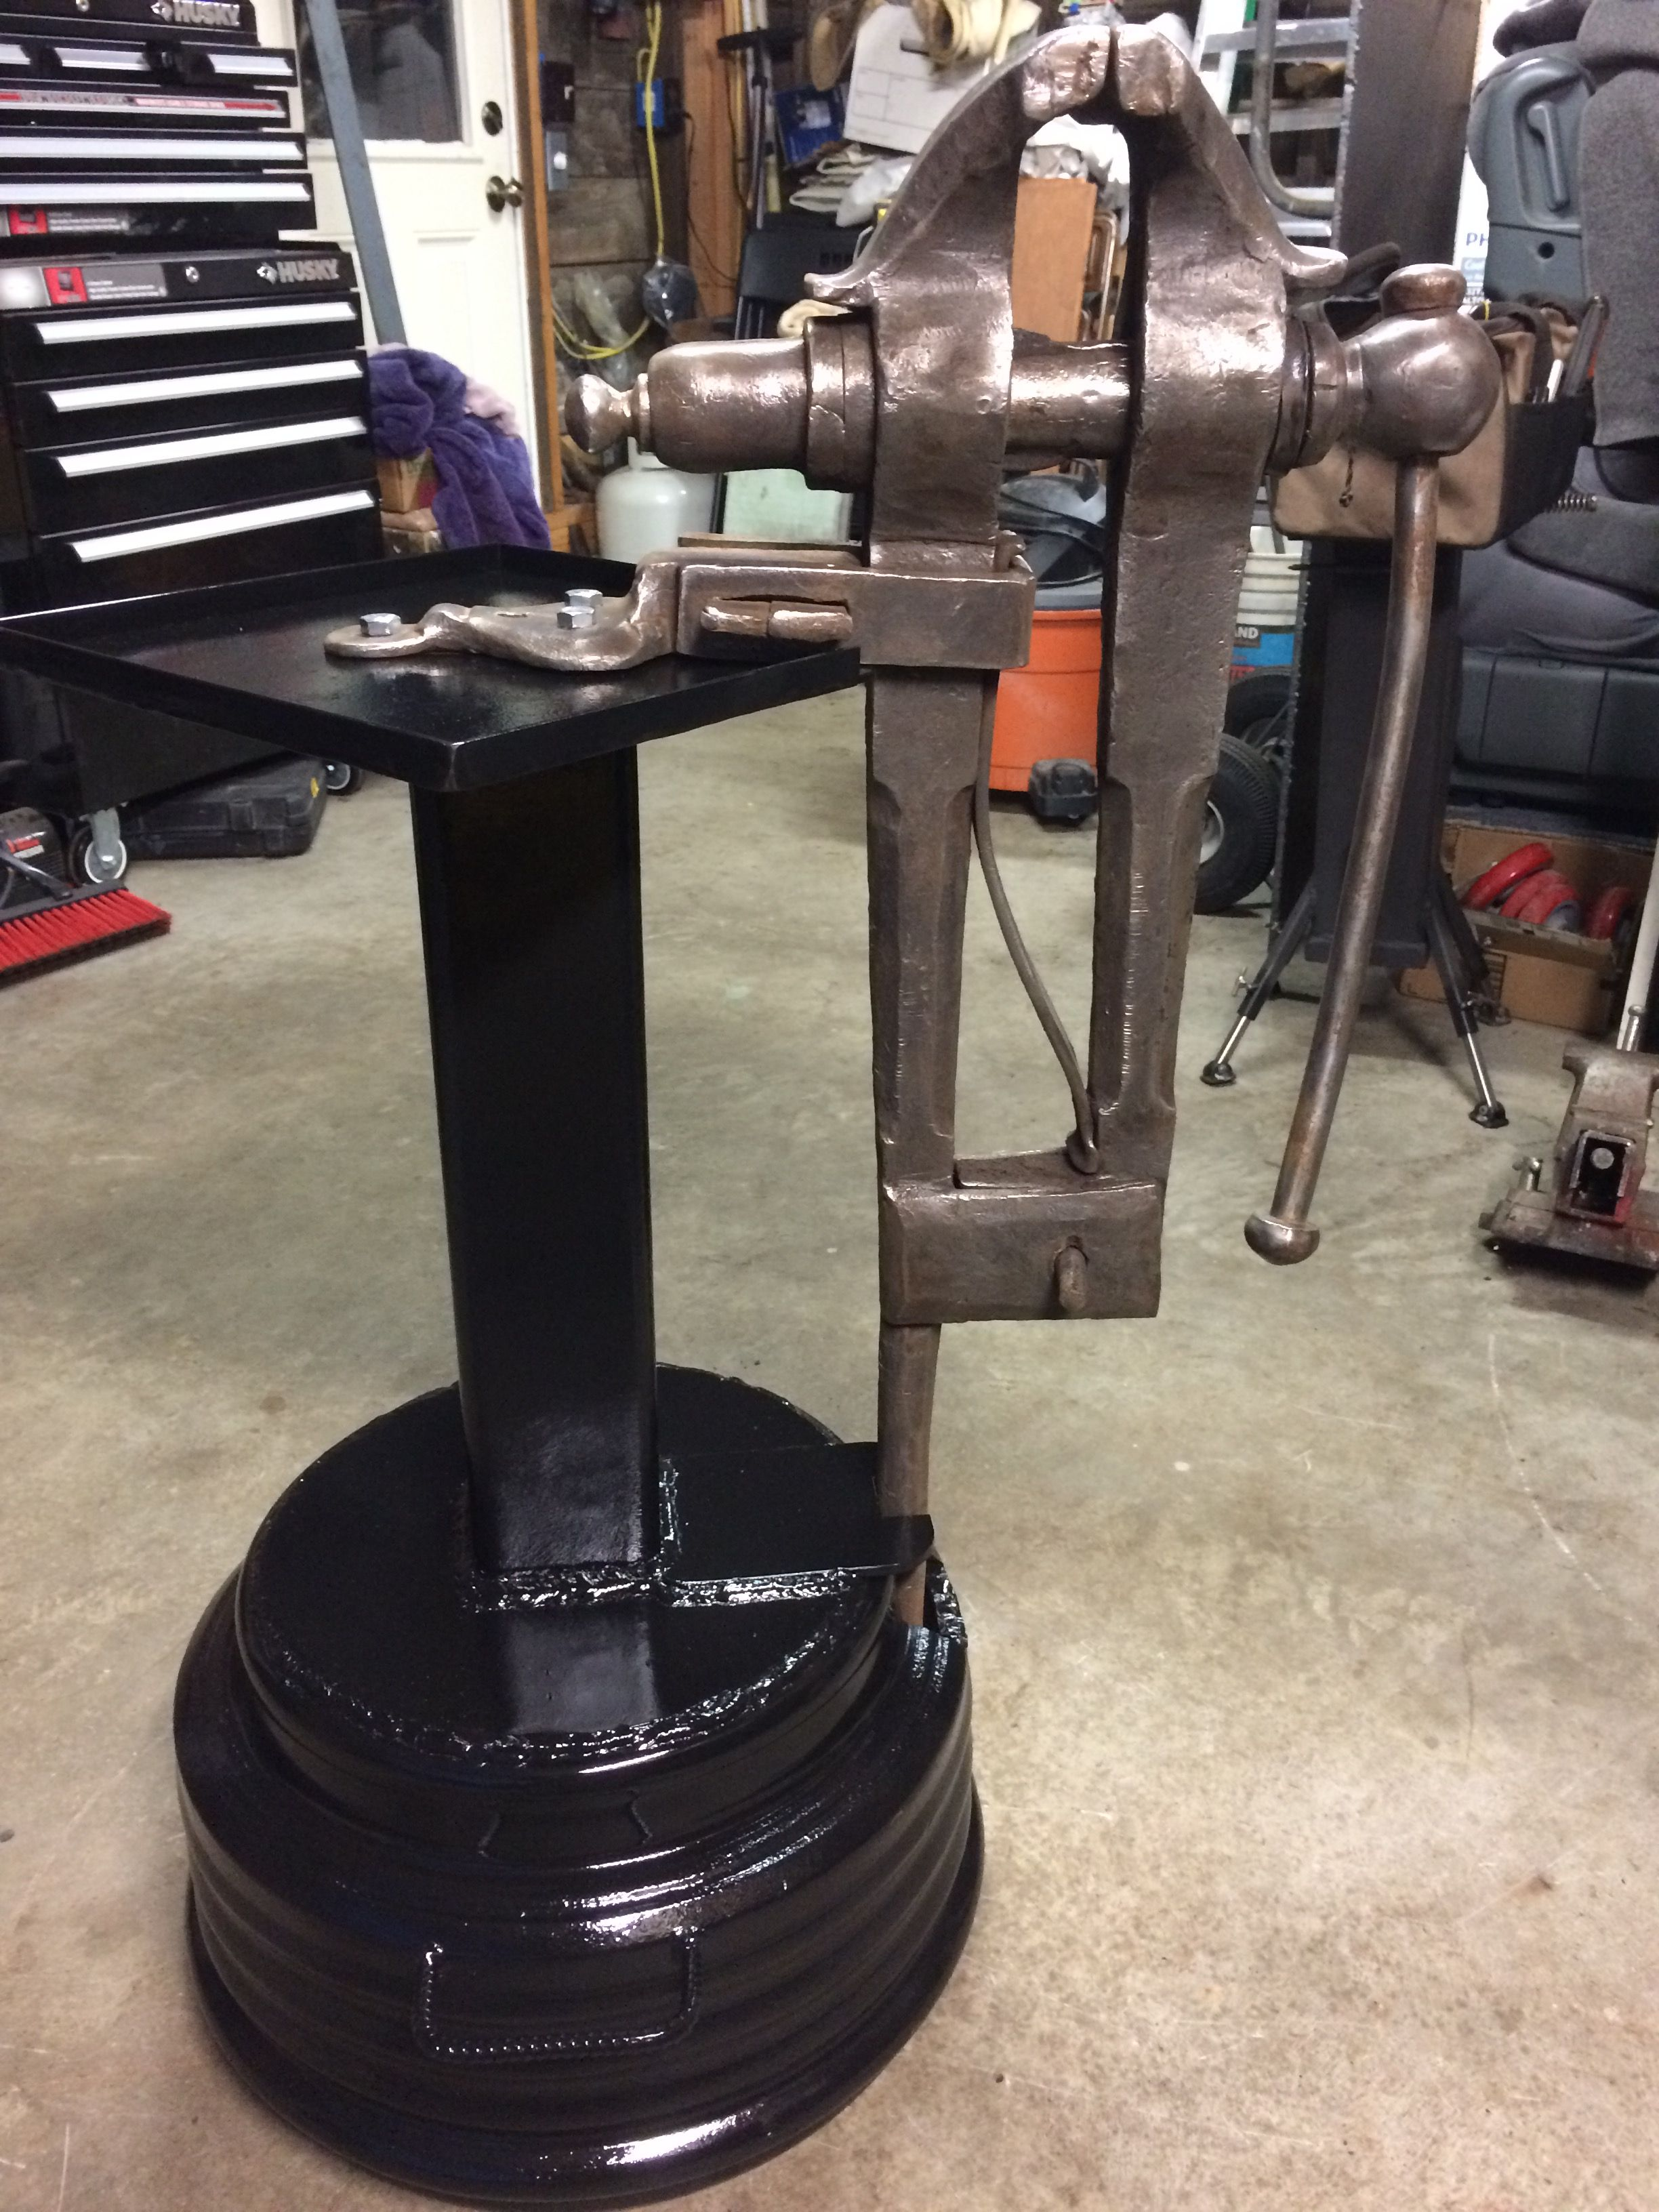 Magnificent Post Vice Mounted On An Old Truck Wheel With 4 Sq Tubing 1 Bralicious Painted Fabric Chair Ideas Braliciousco